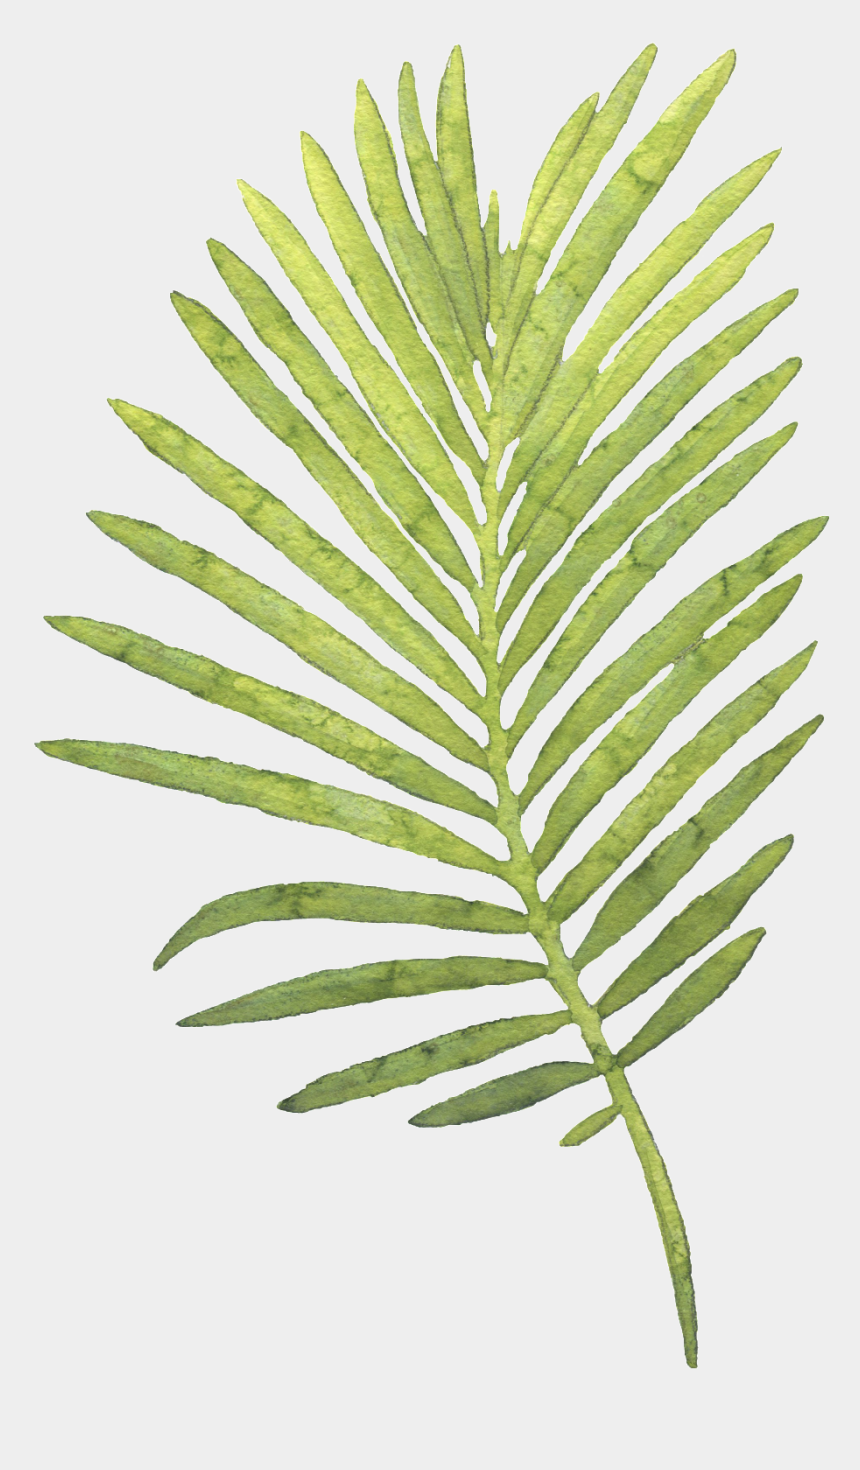 tropical leaf clipart, Cartoons - Watercolor Palm Leaves Png - Watercolour Palm Leaf No Background